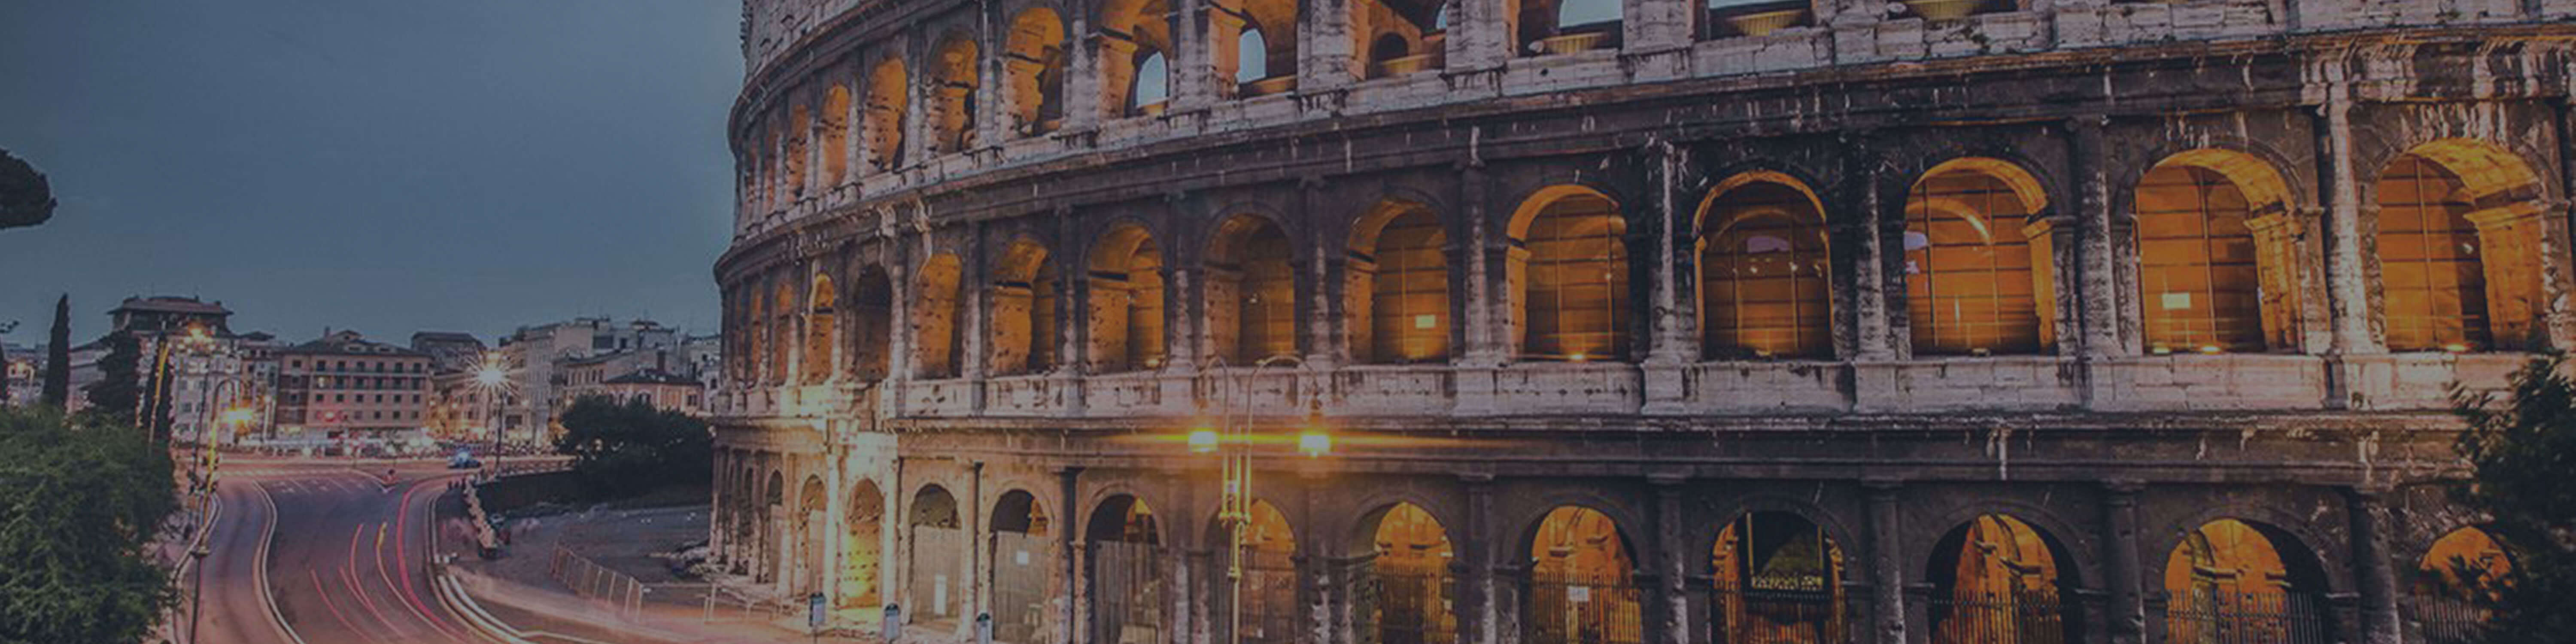 bespoke software development company in Rome